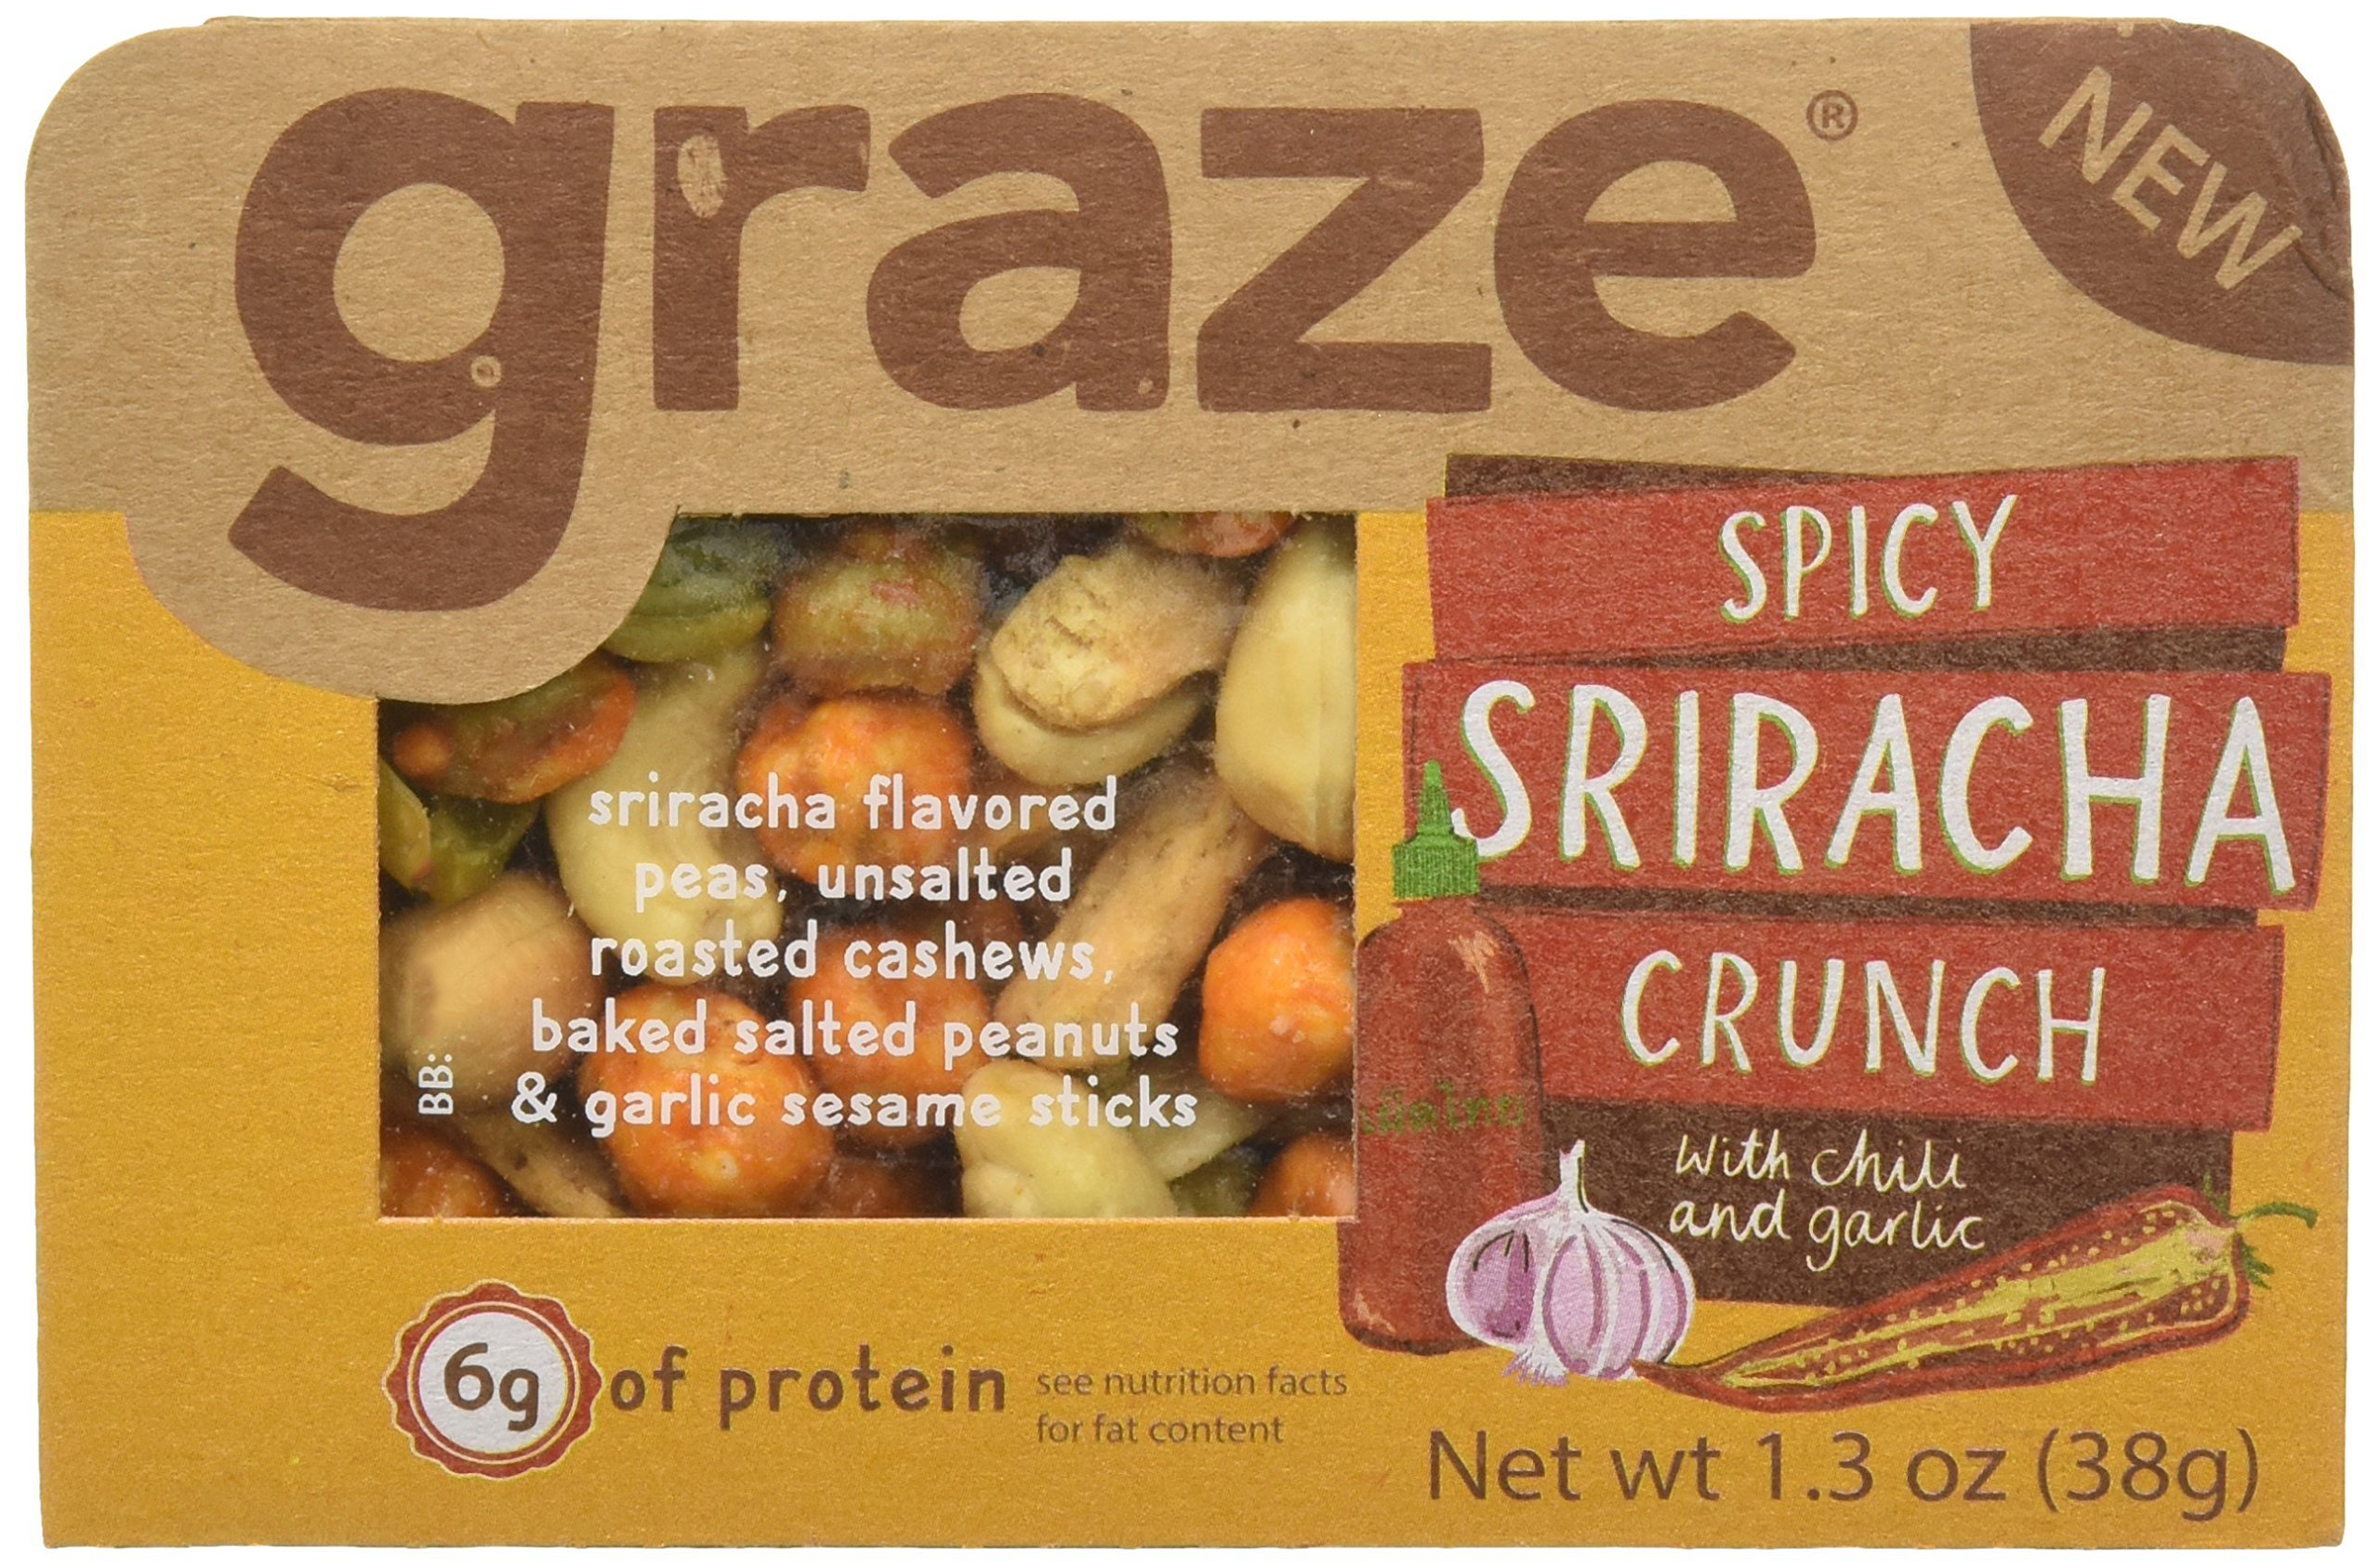 Graze Natural Spicy Sriracha Crunch Snack with Sriracha Peas, Roasted Cashews, Baked Salted Peanuts and Garlic Sesame Sticks, Healthy, Tasty, Natural Nut Trail Mix, 1.3 Ounce Box, 9 Pack